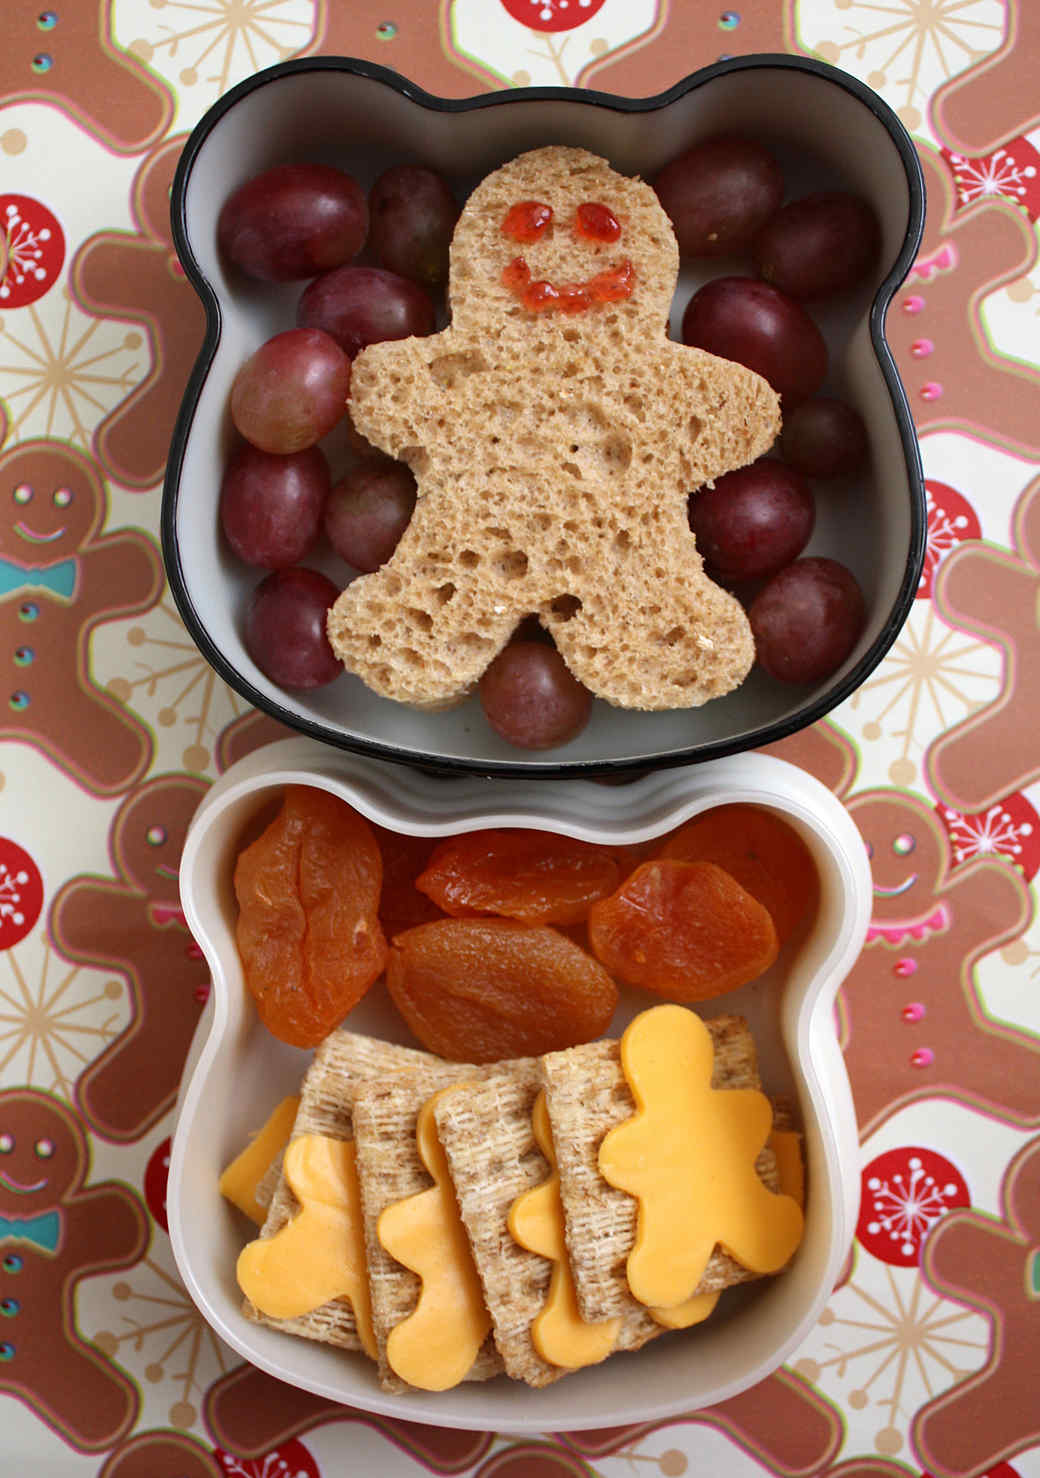 gingerbread-man-bento-box.jpg (skyword:357487)